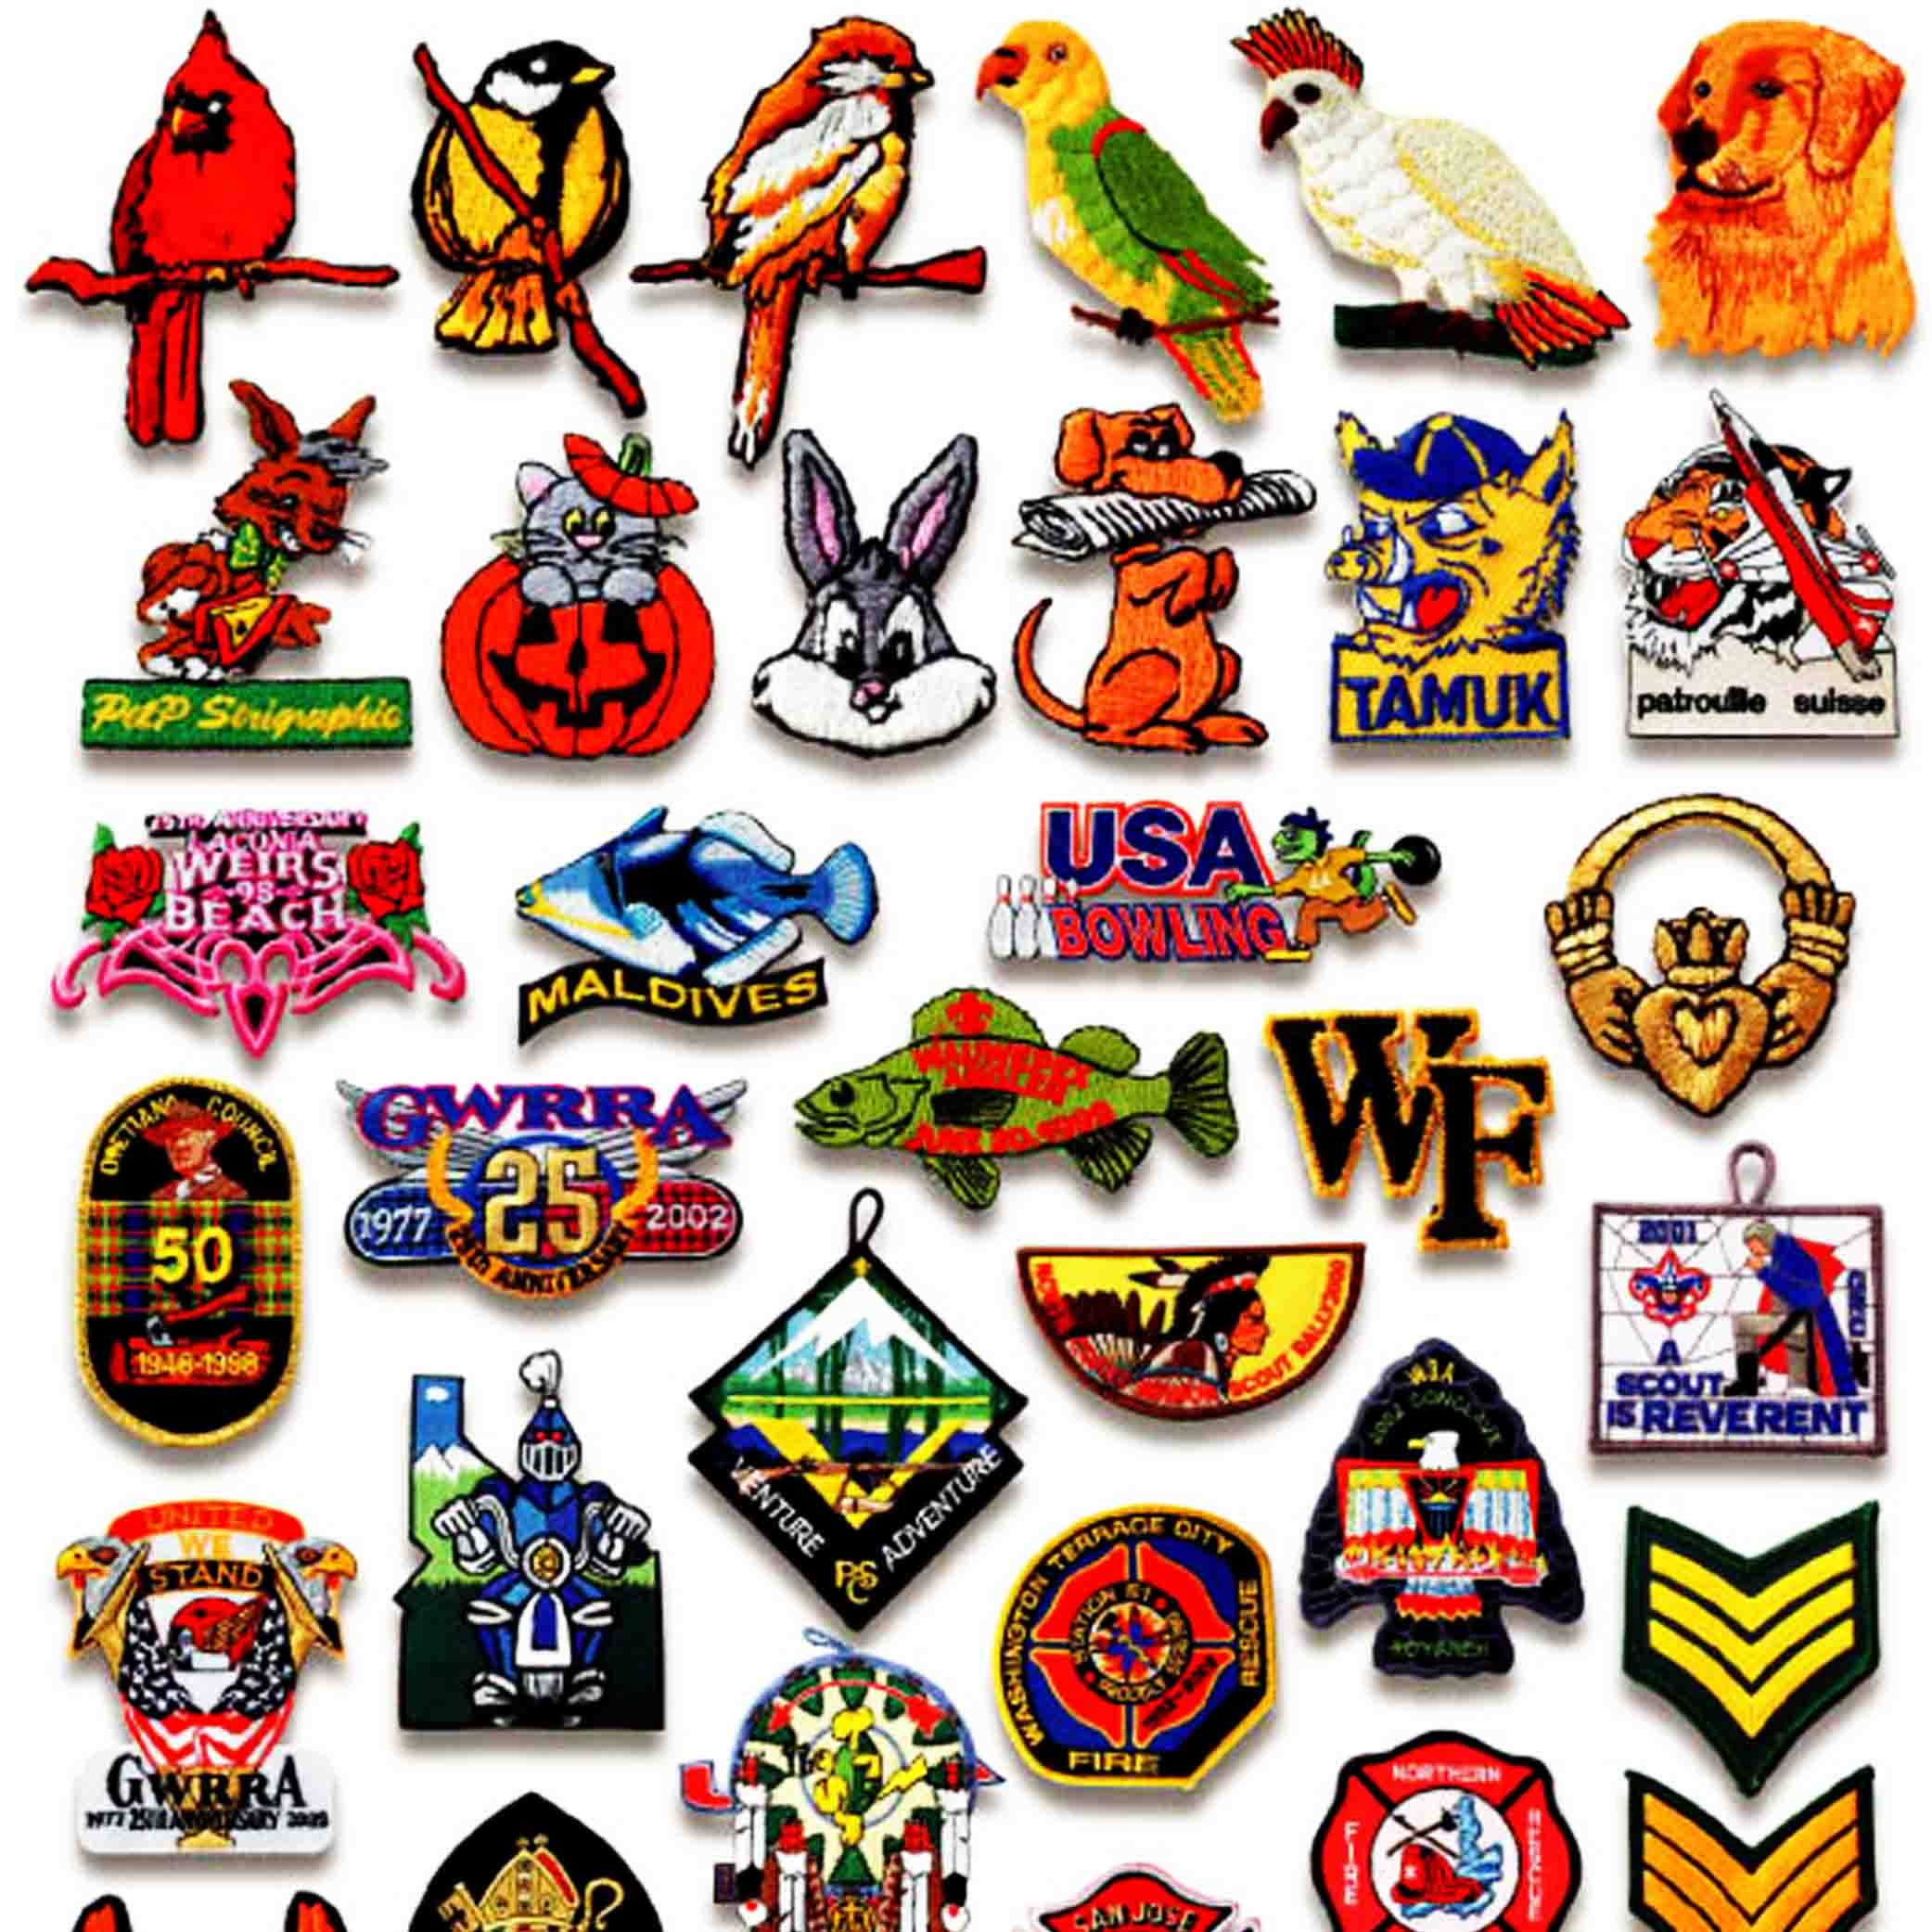 Brand Patches